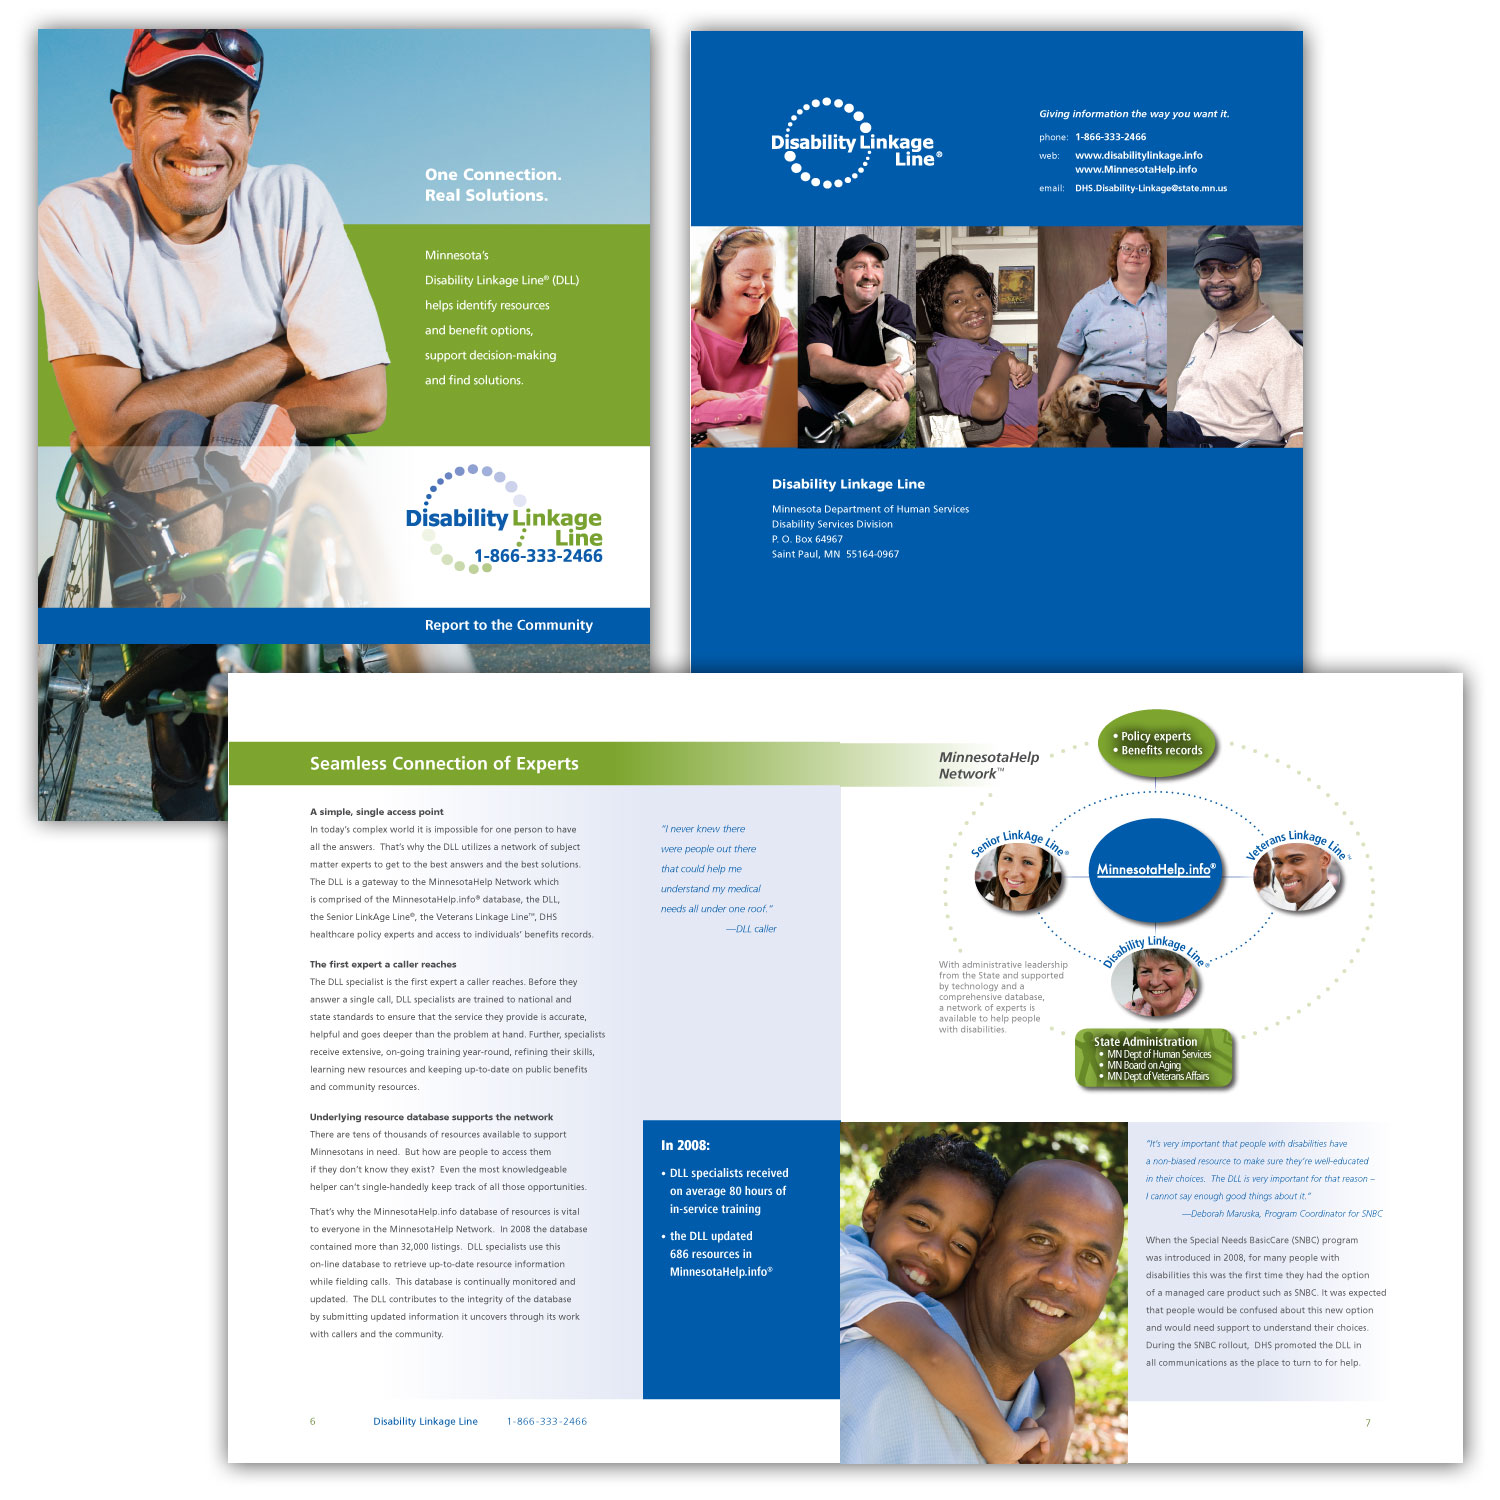 One Connection. Real Solutions.   Seth Levin & Associates Disability Linkage Line     This information booklet describes how Minnesota's Disability Linkage Line is a one-stop connection to find whatever is needed for a person's situation. These services are now also part of the Minnesota Help web site. __________